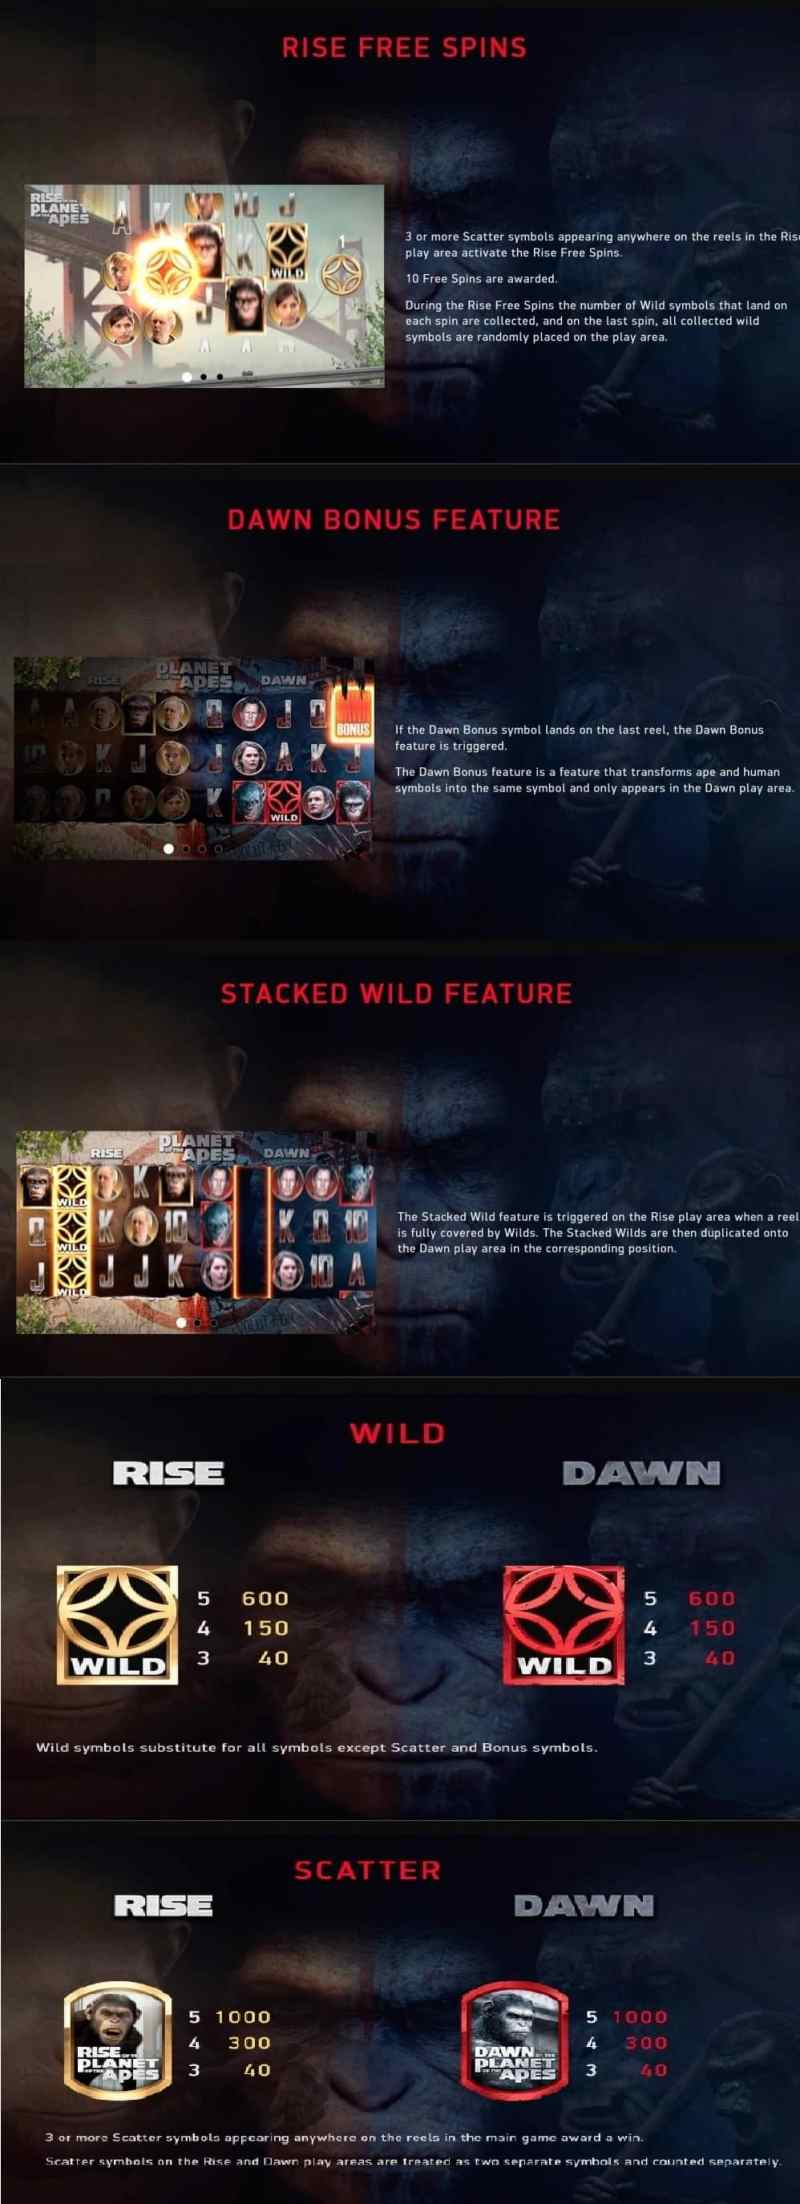 This is a screencap from the slot game explaining the various bonus features of the game, including the free spins, wilds and scatter bonus.